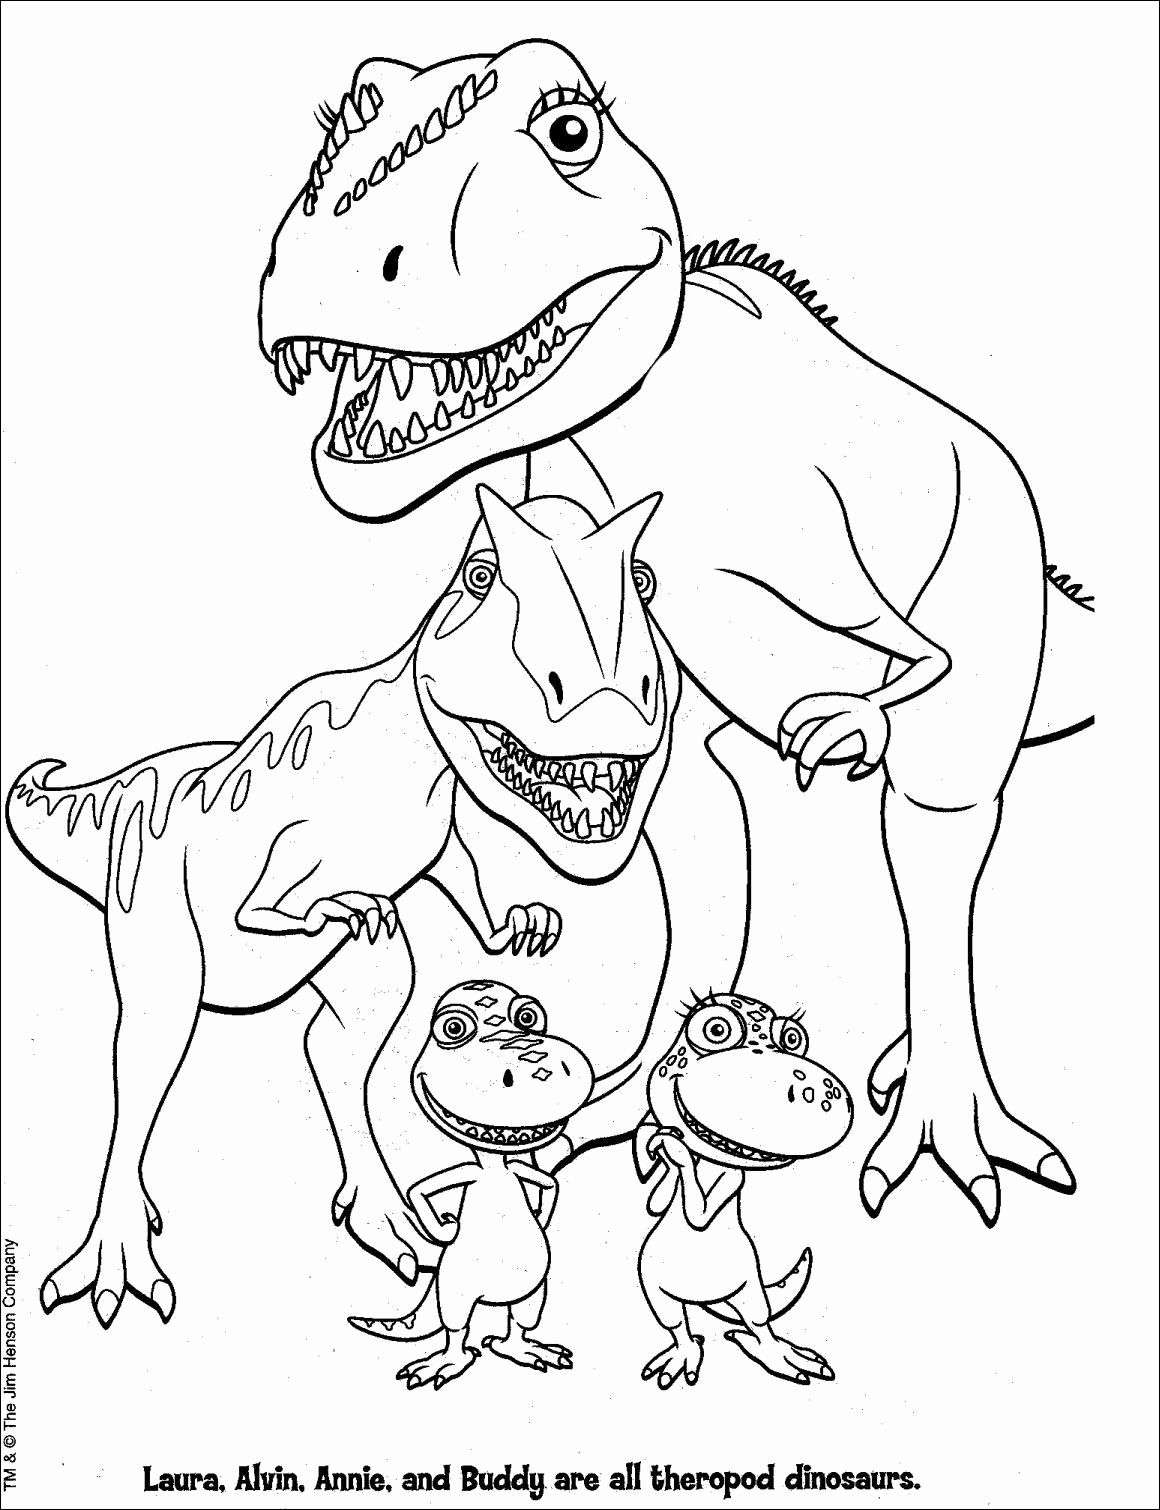 Lego Dino Coloring Pages For Kids Dinosaur Coloring Pages Train Coloring Pages Family Coloring Pages